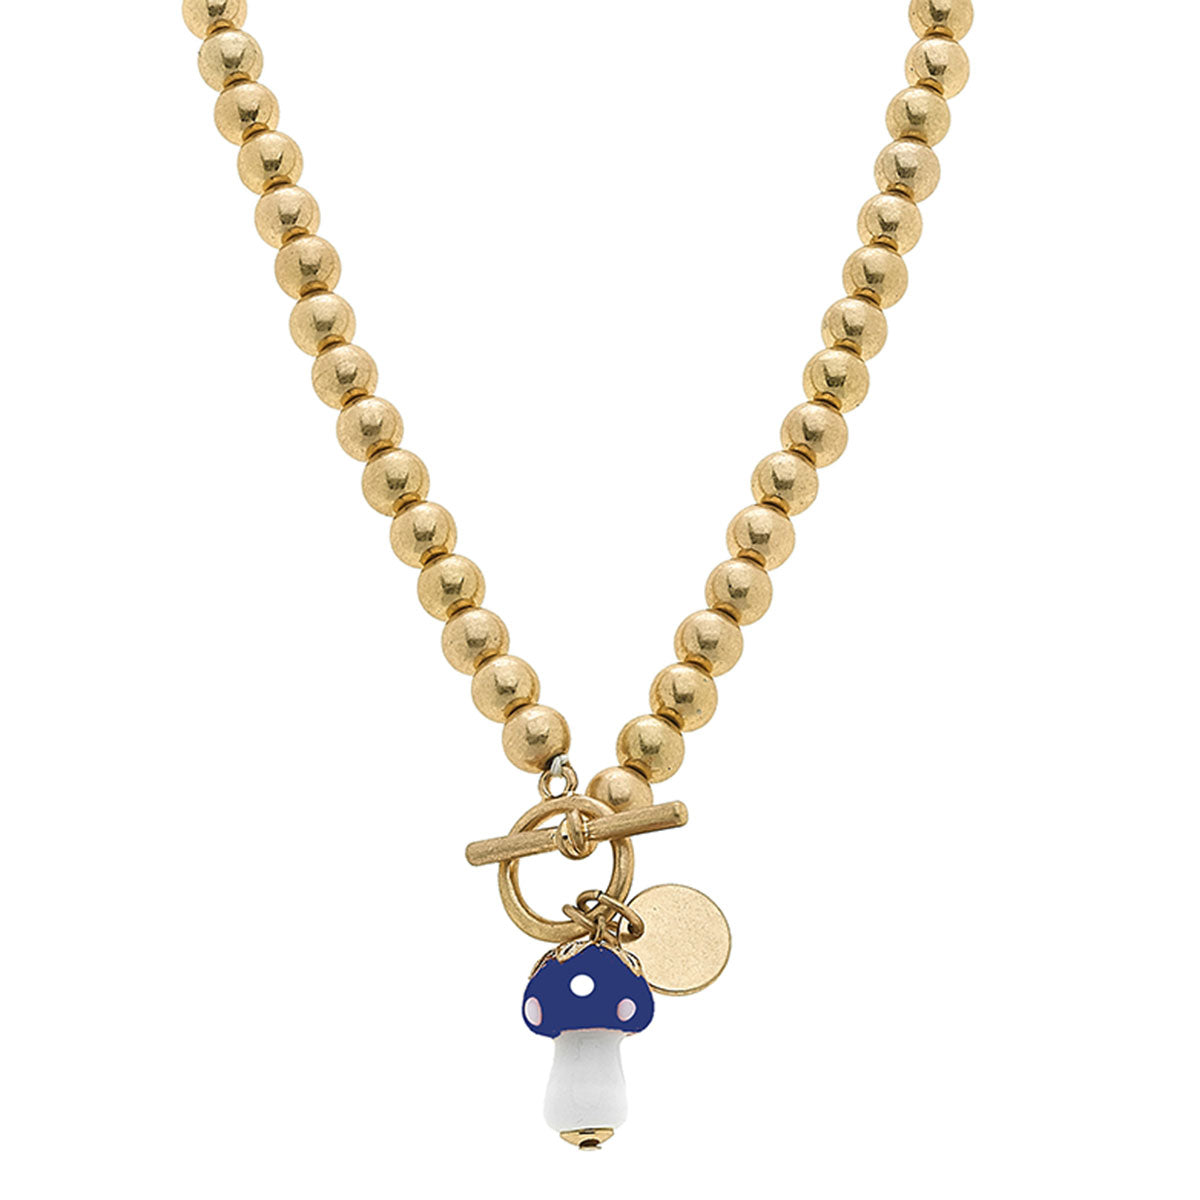 Murano Glass Mushroom Charm Ball Bead T-Bar Necklace in Blue